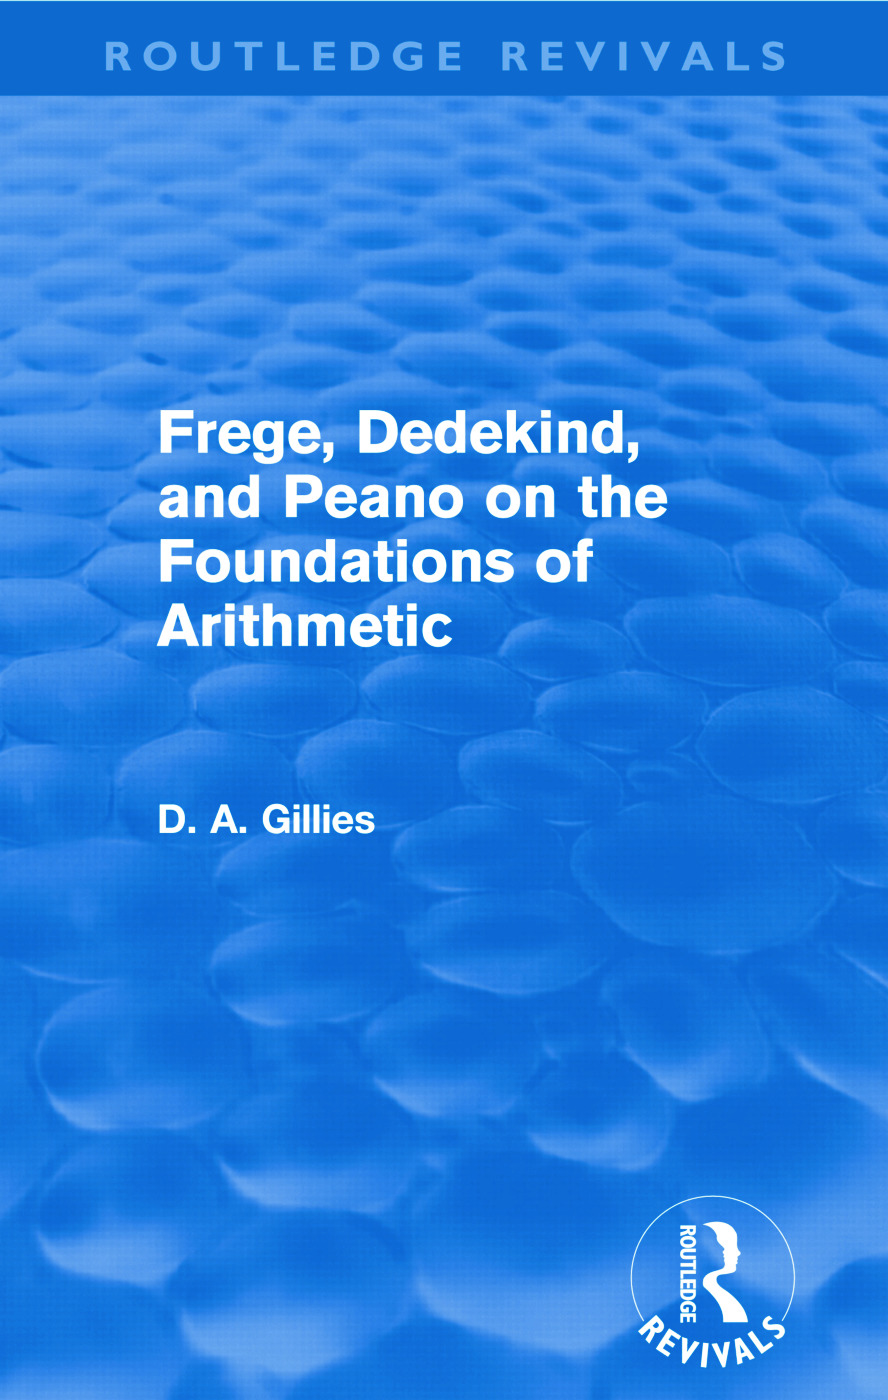 Frege, Dedekind, and Peano on the Foundations of Arithmetic (Routledge Revivals) (Paperback) book cover